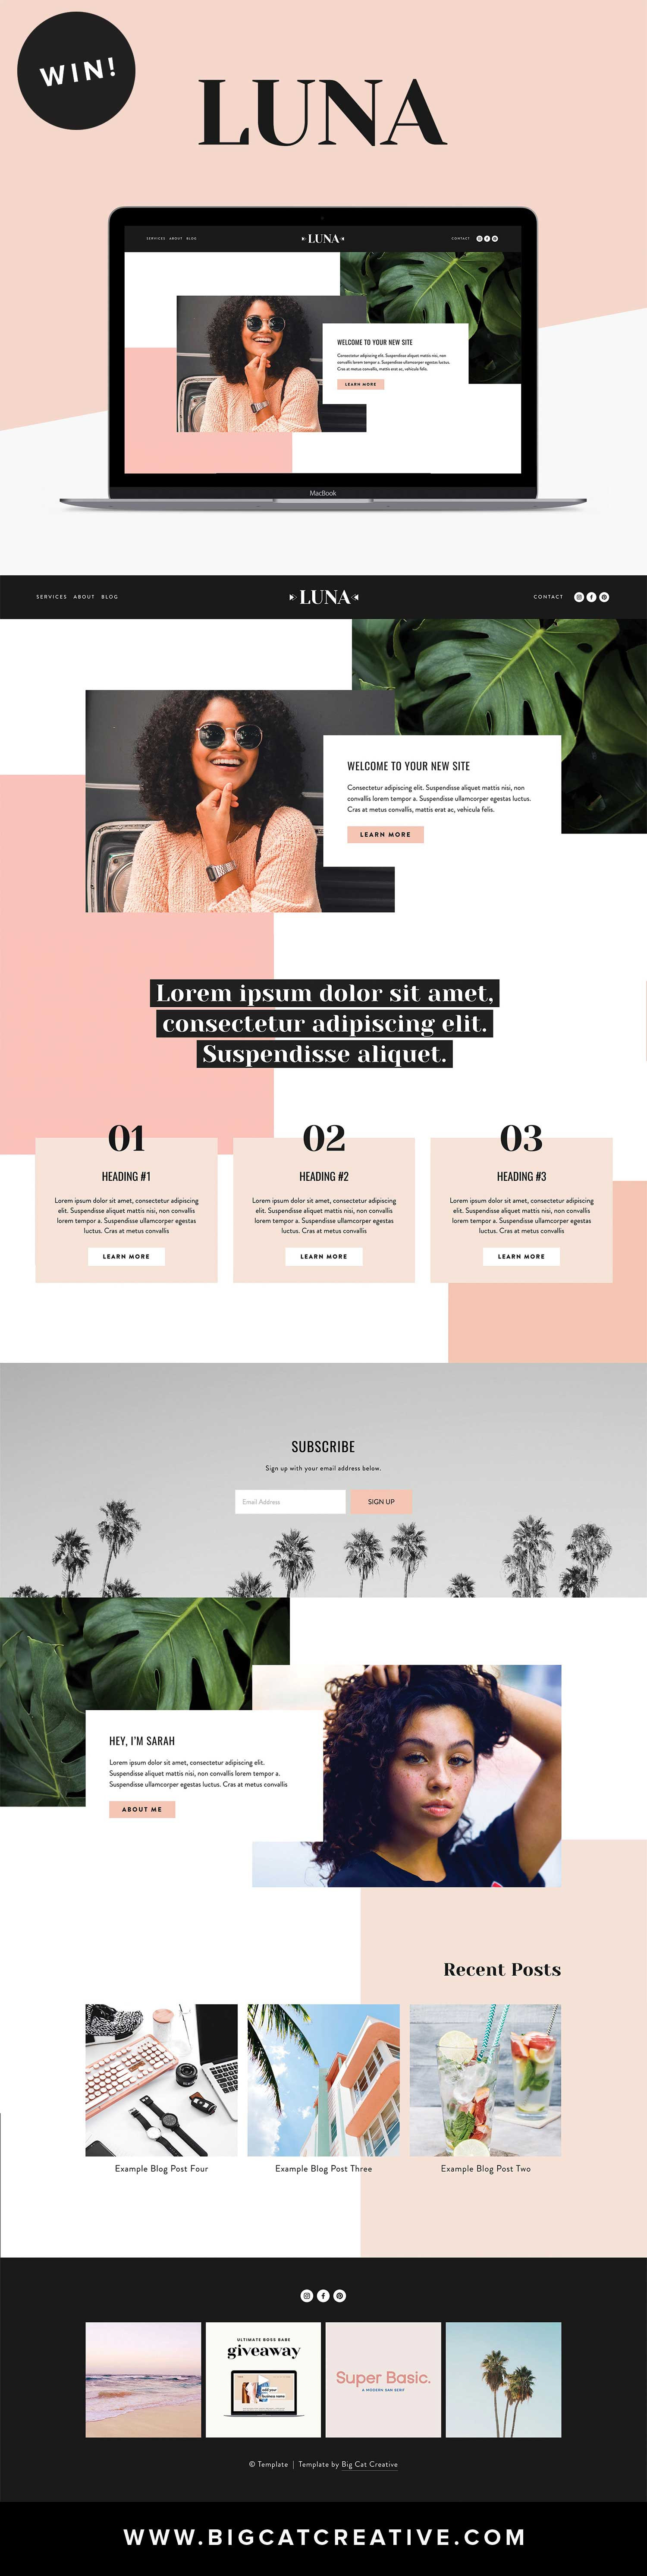 ** GIVEAWAY** LUNA Squarespace Template Kit by Big Cat Creative   The Luna Squarespace Template Kit is a fun and dynamic website template that is perfect for almost any small business, blogger or influencer. #squarespace #template #website